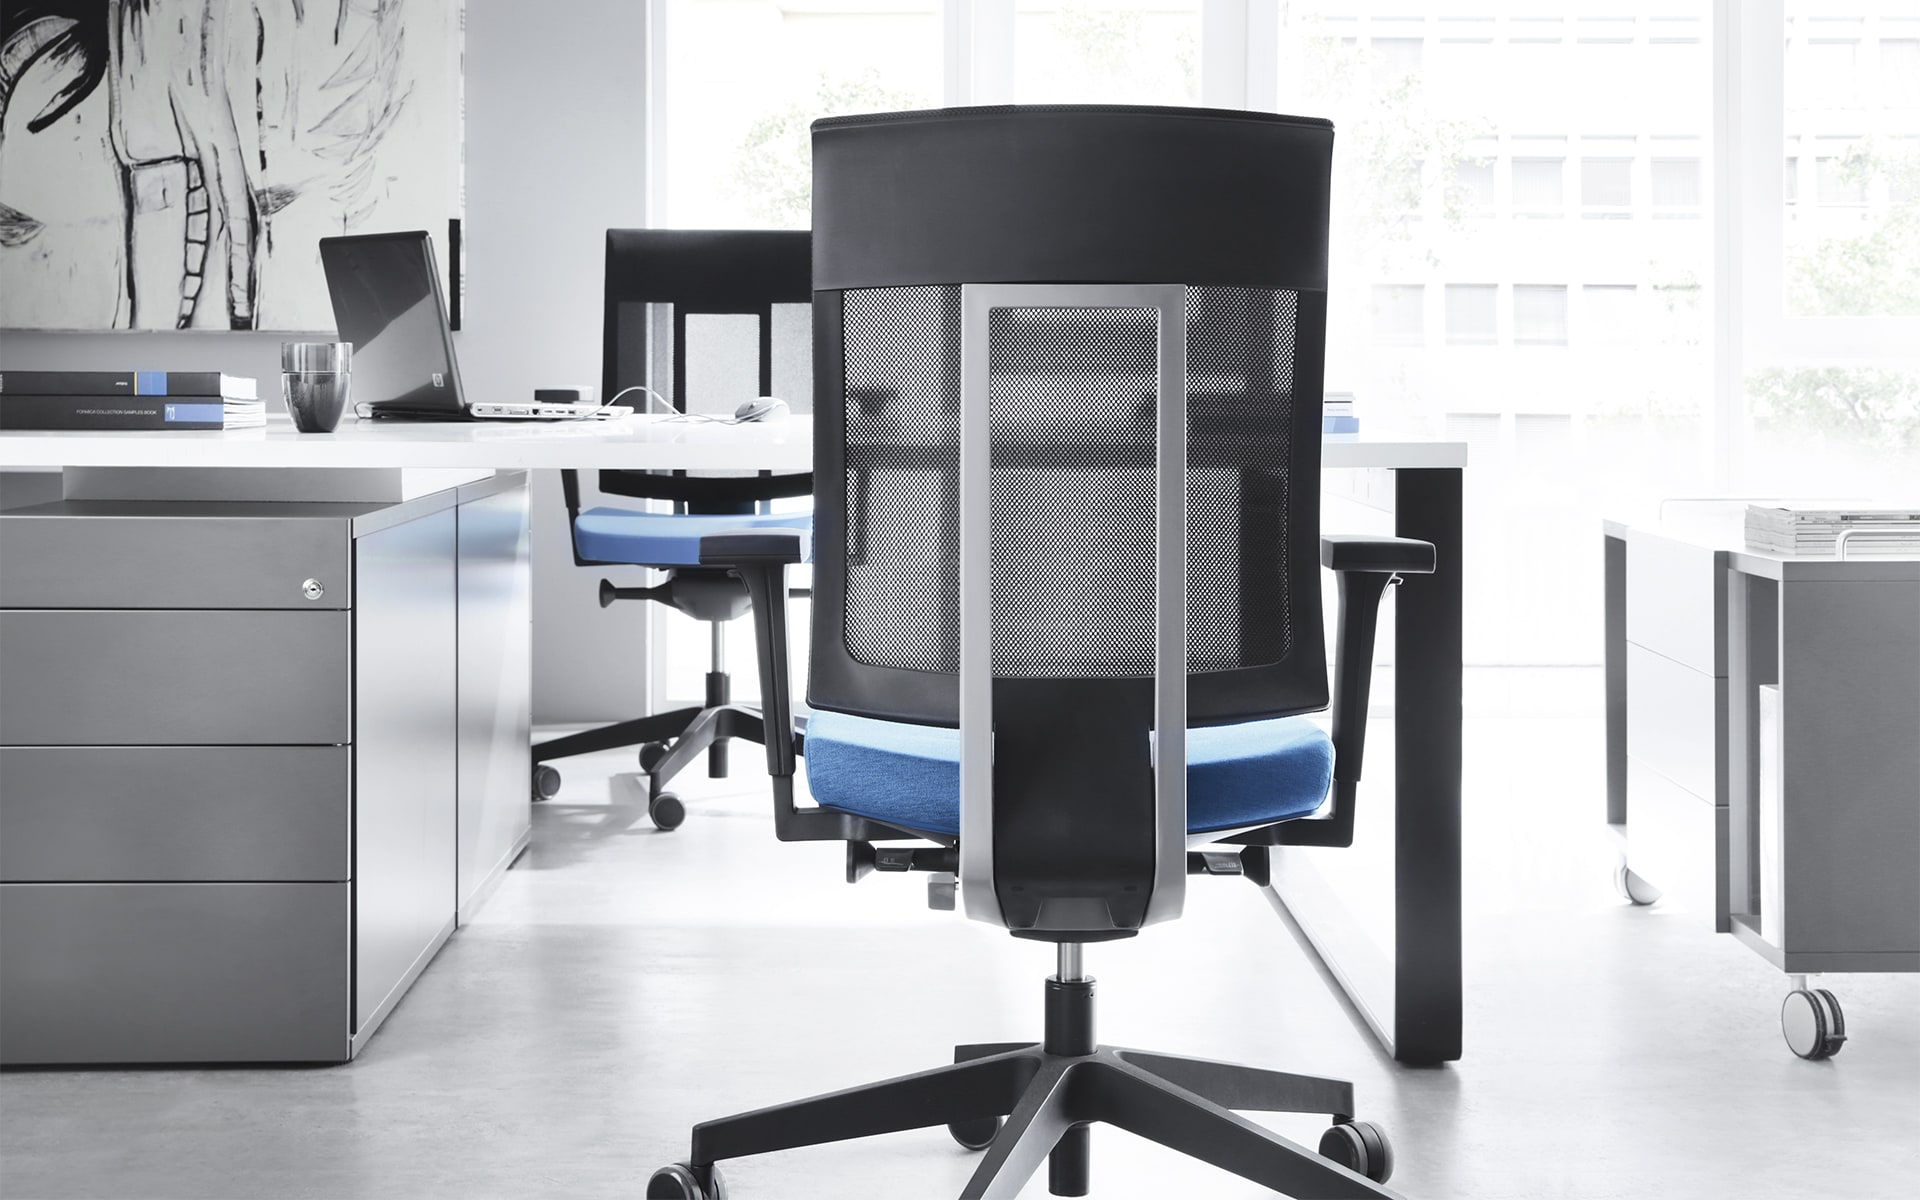 Profim Xenon office chairs by ITO Design with mesh backrests and blue upholstery at modern desk